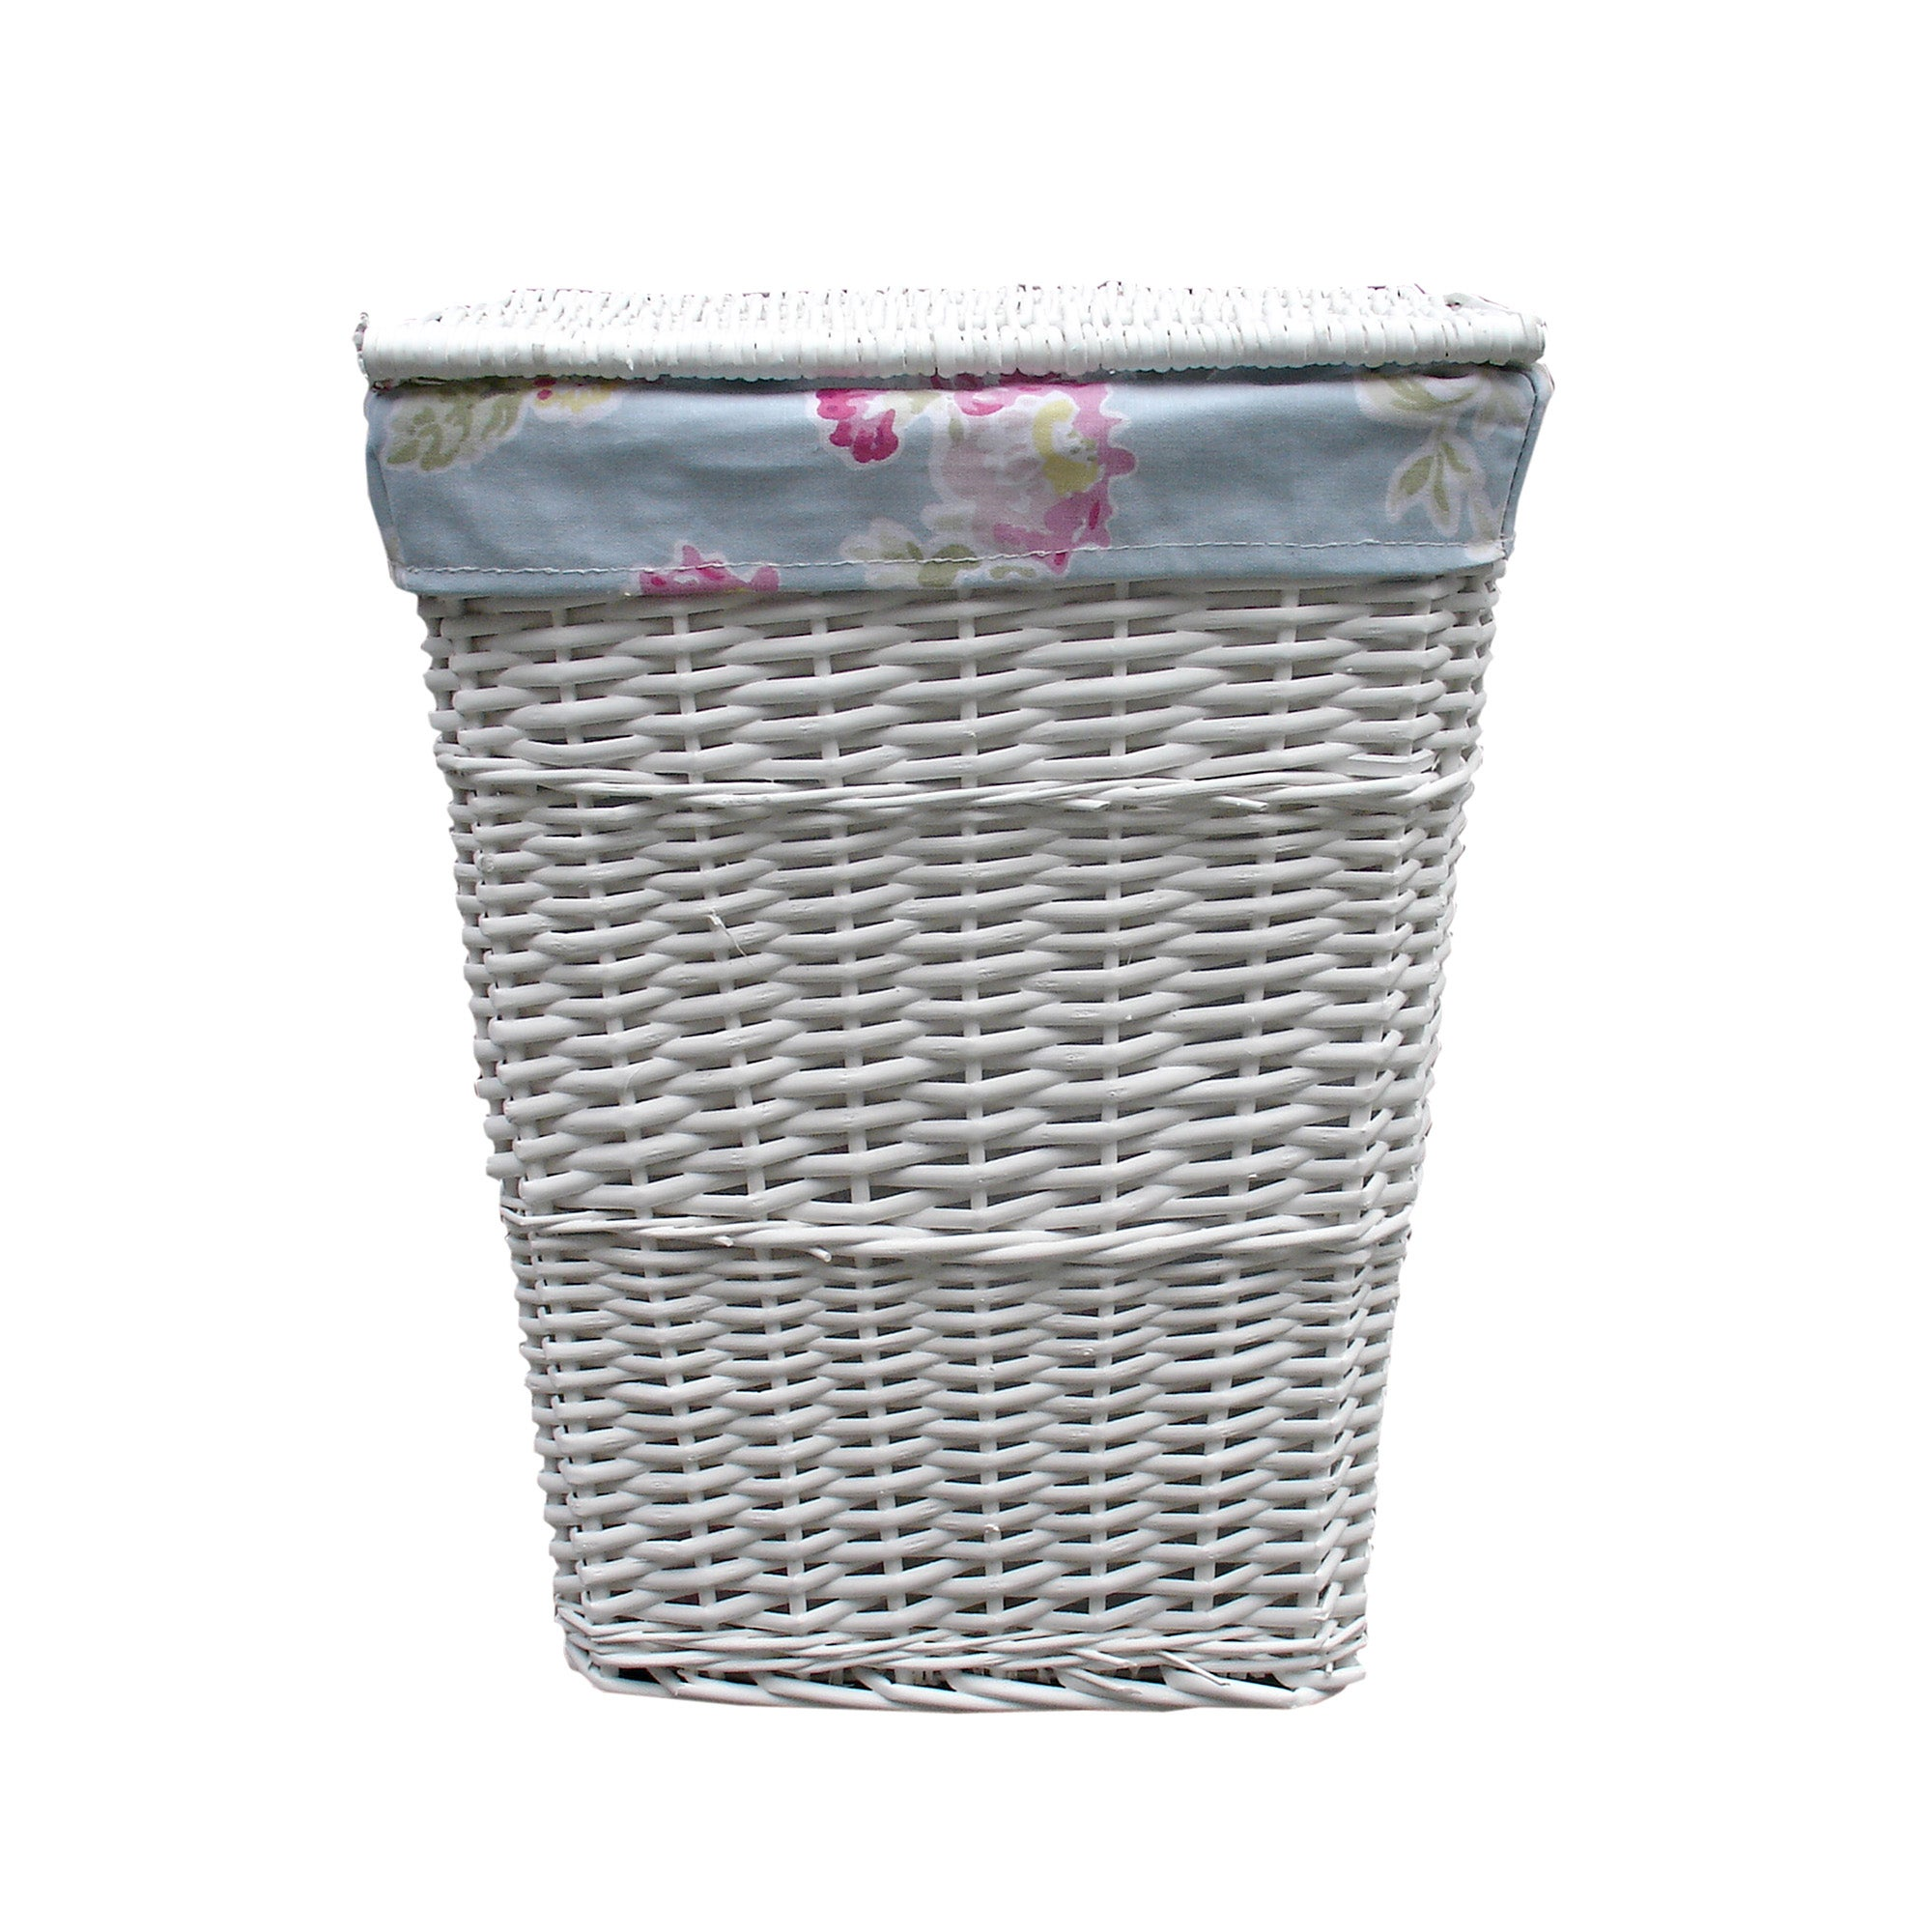 Buy Cheap Wicker Laundry Basket Compare Products Prices